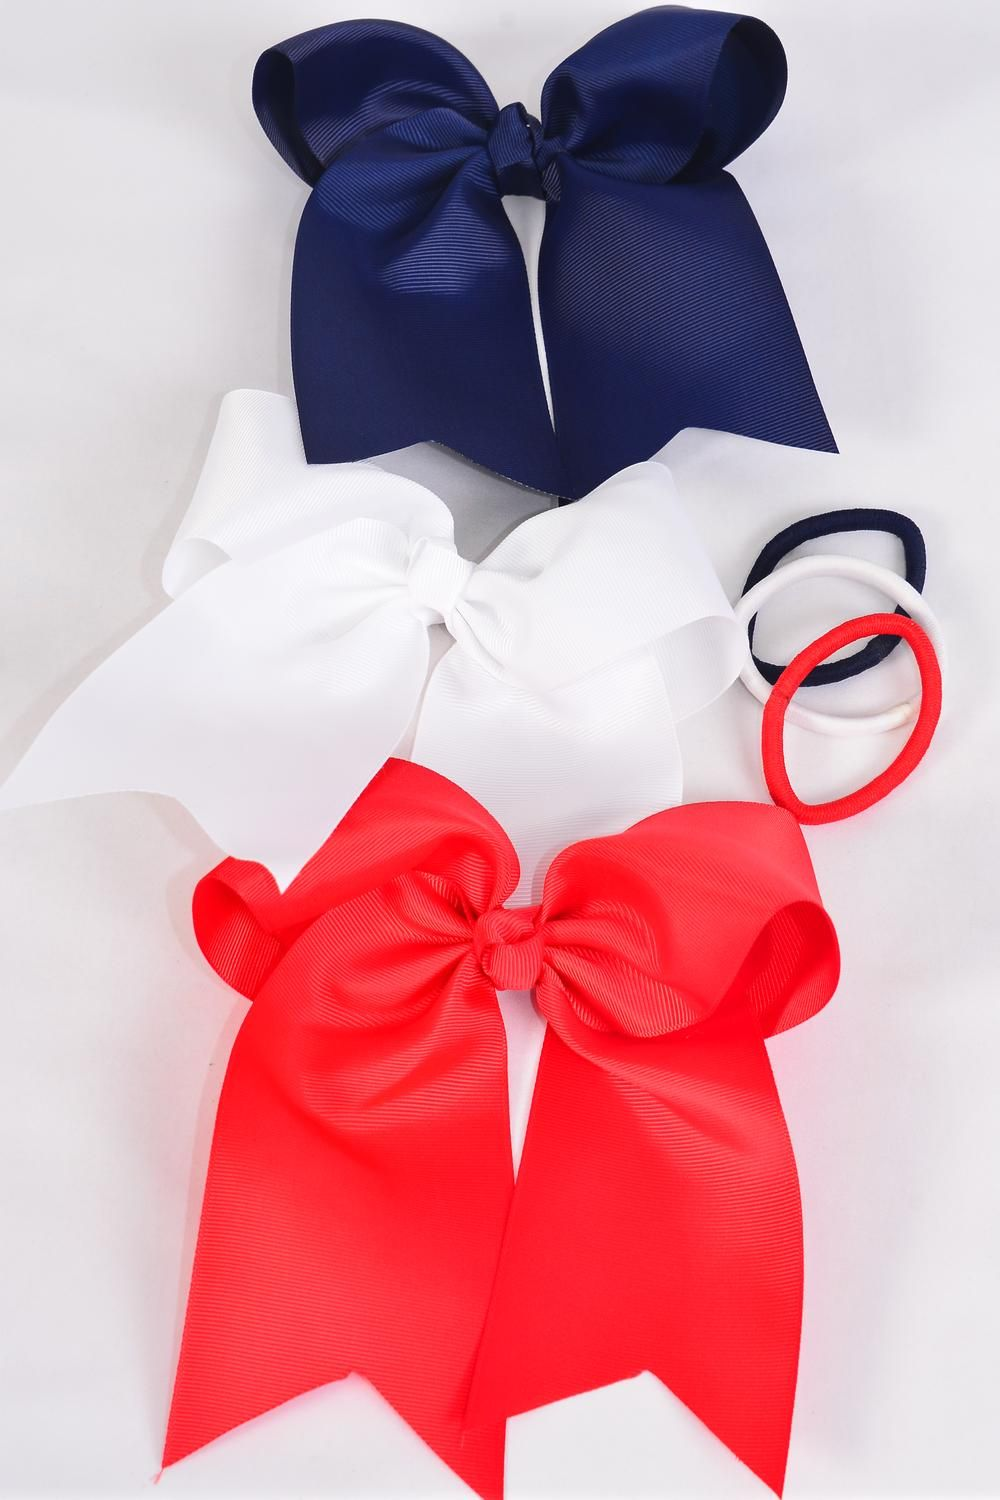 "Hair Bow Jumbo Long Tail Cheer Type Bow Elastic Cheer Type Bow Grosgrain Bow-tie Red White Navy Mix/DZ **Red White Navy Mix** Elastic,Size-6.5""x 6"" Wide,4 Red,4 White,4 Navy Color Asst,Clip Strip & UPC Code"